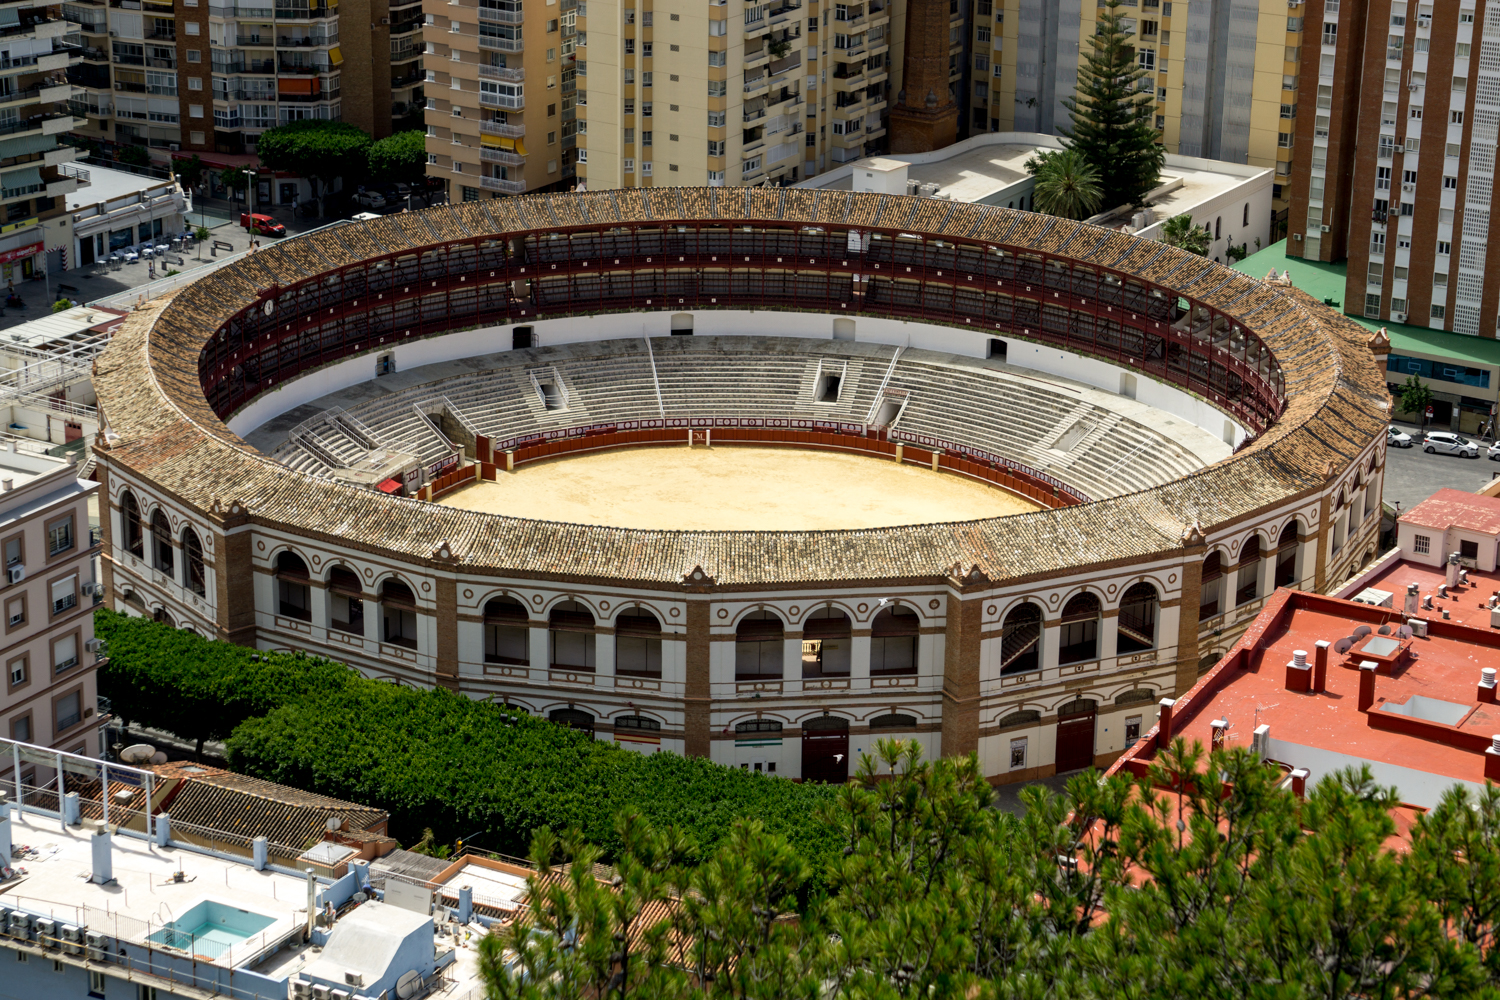 A view of La Malagueta, a 19th century bullfighting ring (gross....)